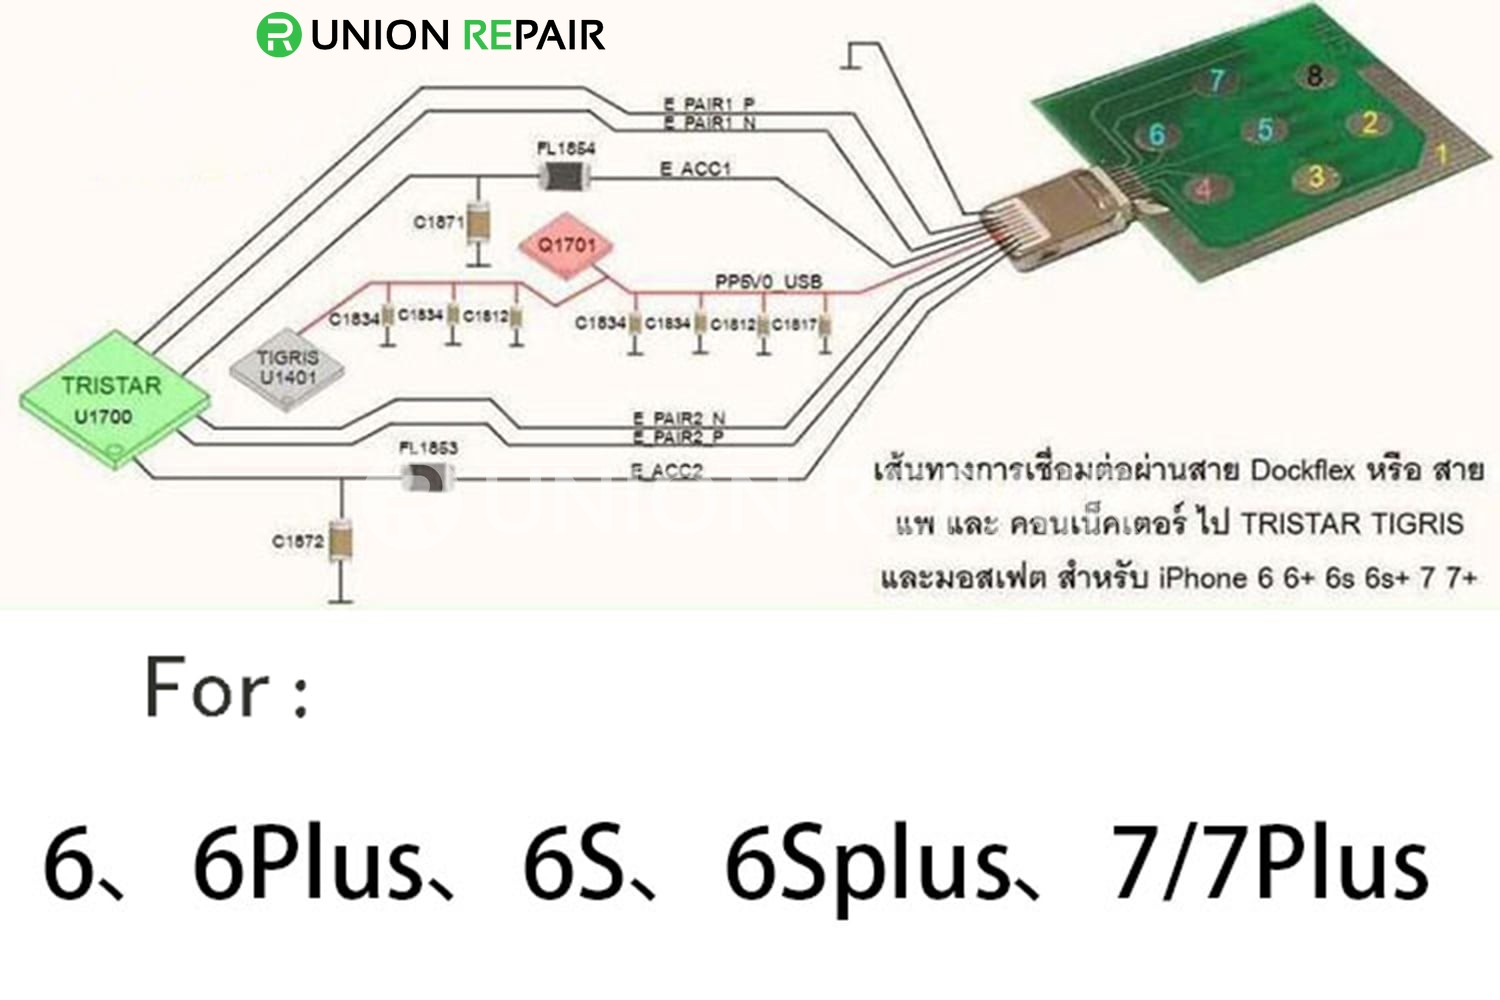 Iphone 4 Dock Wiring Diagram Posts Usb Battery Library A New Plug